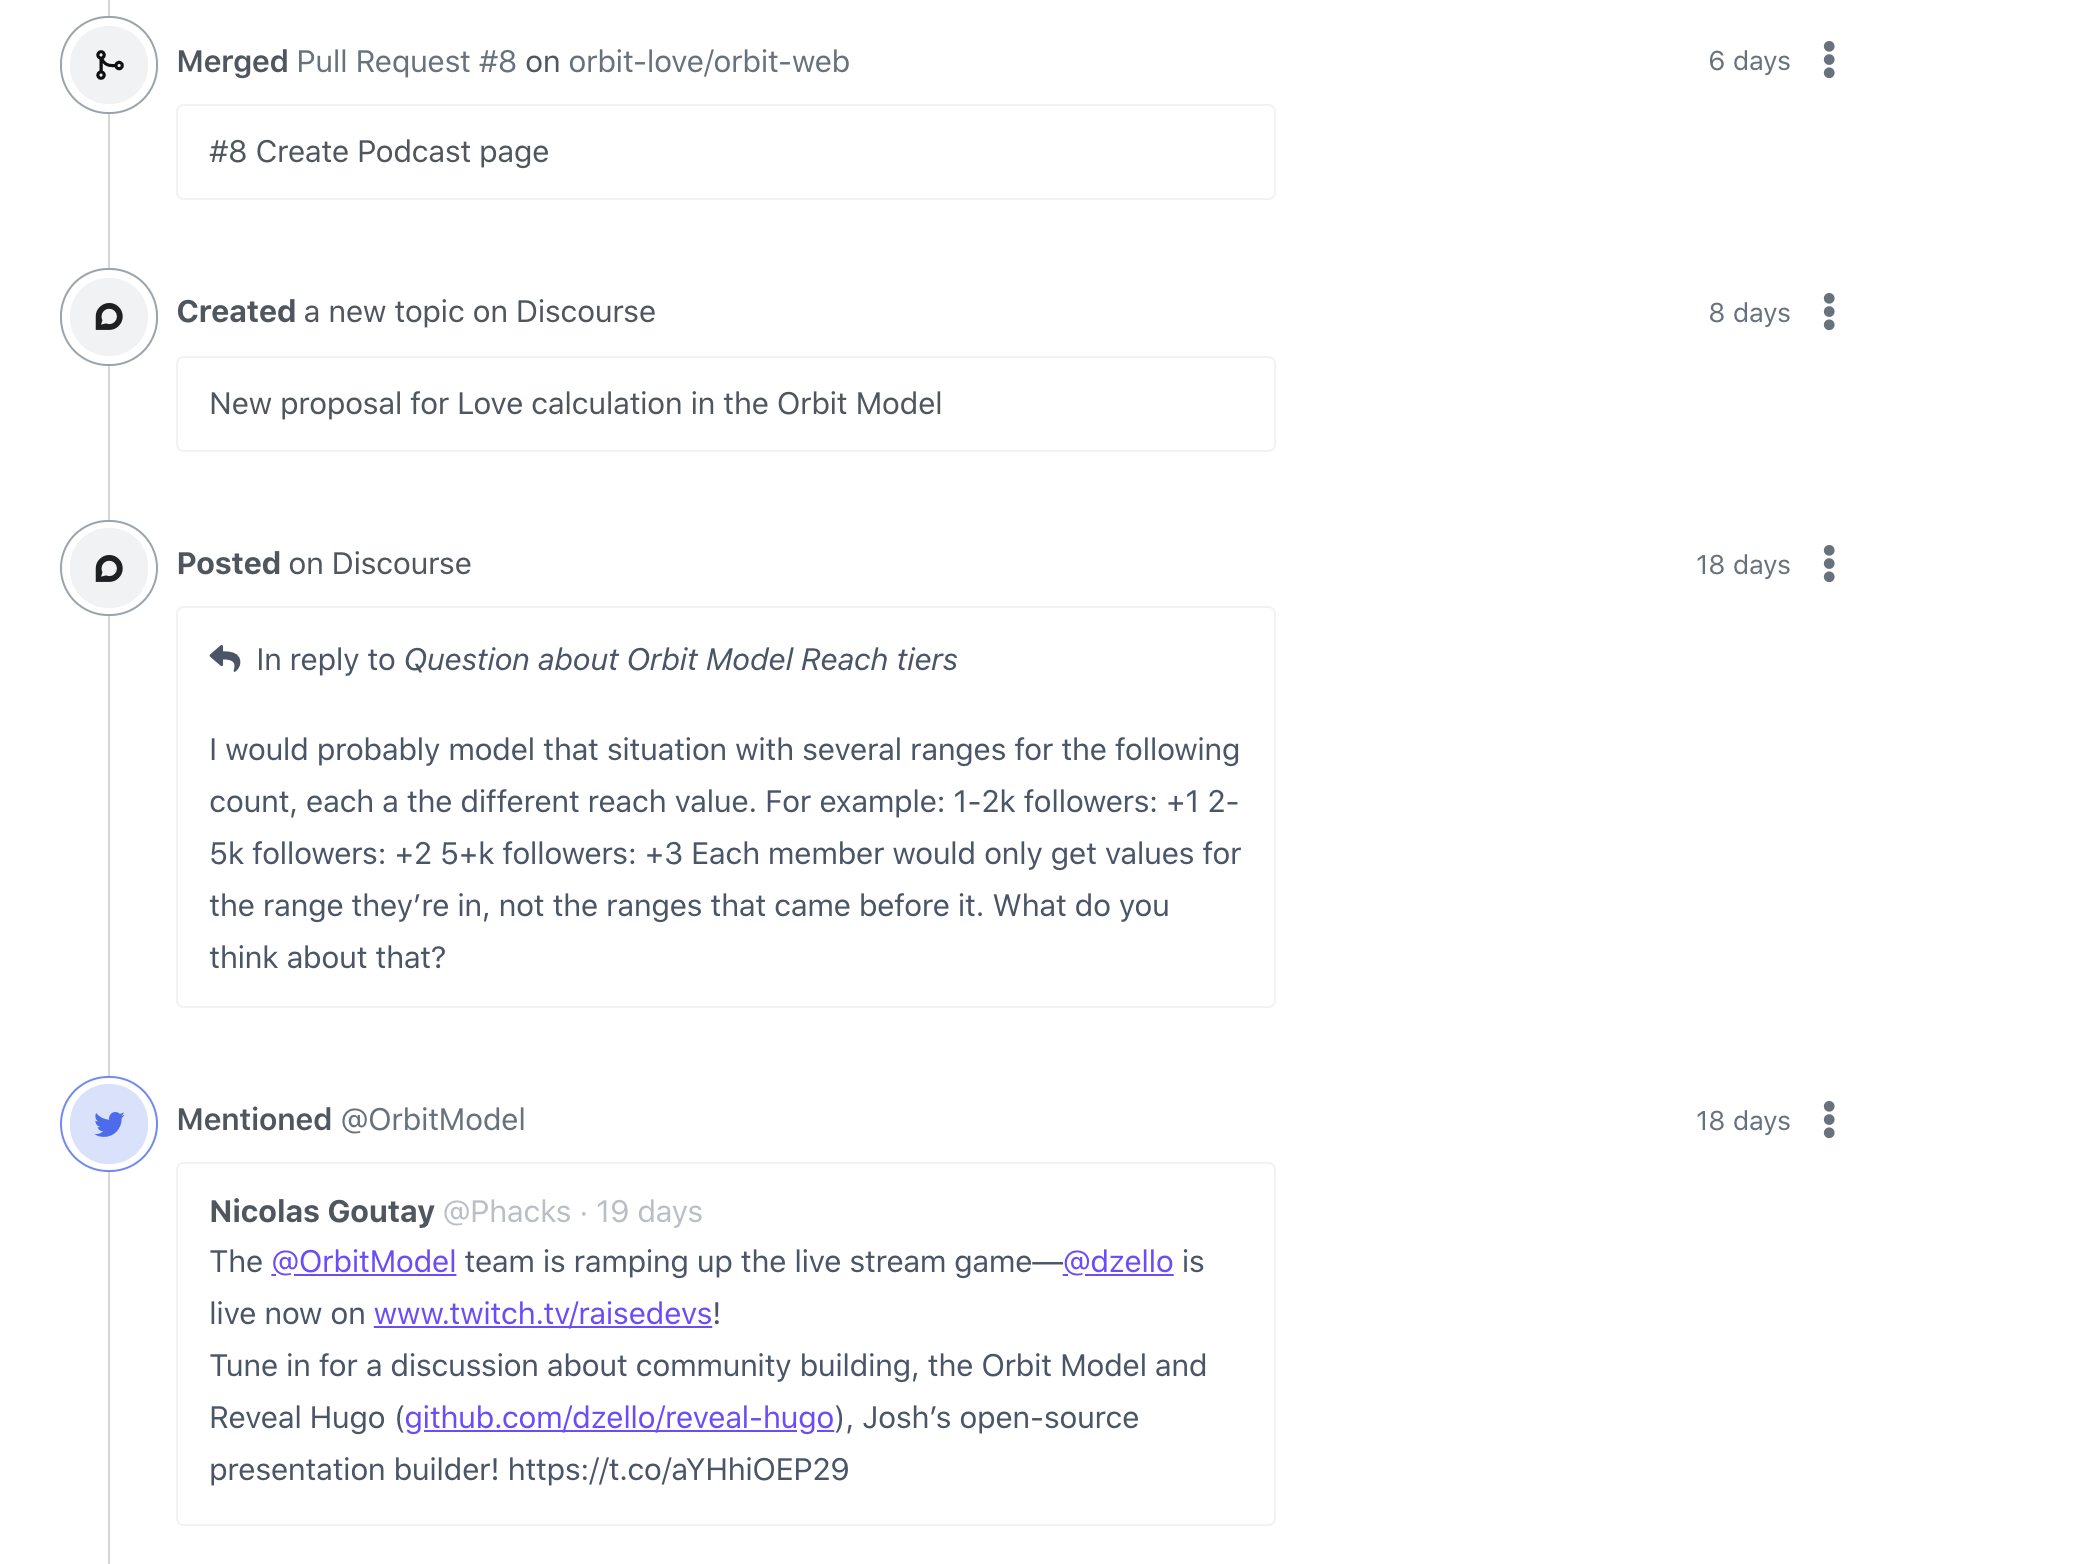 Orbit Member timeline show various activities, including Twitter, GitHub, and Discourse